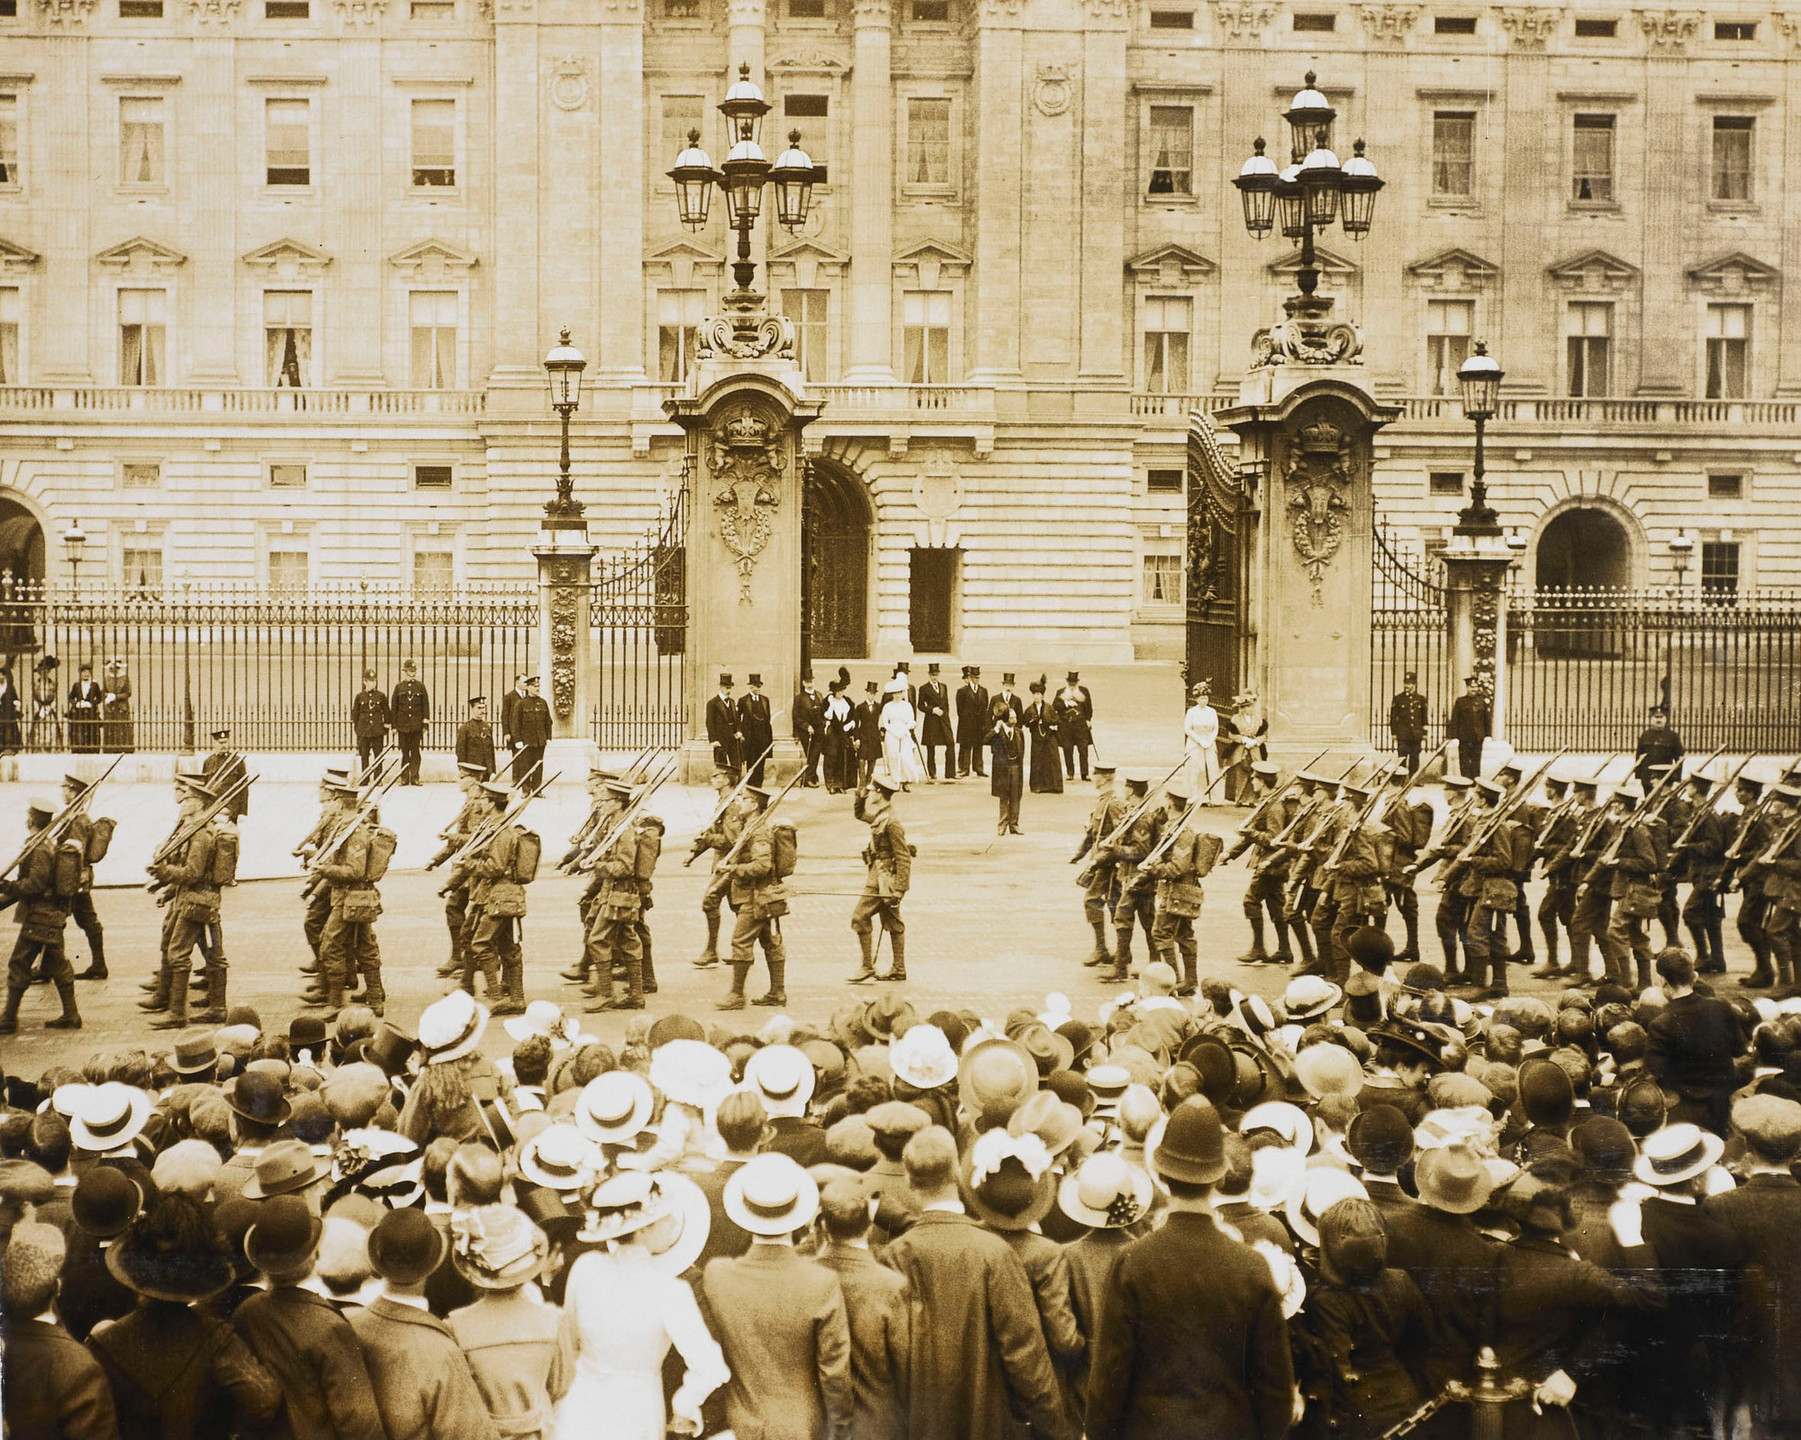 2nd Battalion Grenadier Guards before departure for Front 9 - 9 Aug 1914. Photograph showing the 2nd Battalion of the Grenadier Guards parading in front of the Royal Family who stand at the gates of Buckingham Palace with some Royal Household officials. The King is seen holding his hat next to his head, taking the salute from the troops marching towards the left of the image. Crowds are in foreground. The photograph is from an album compiled by Queen Mary and bearing annotations in her own hand.